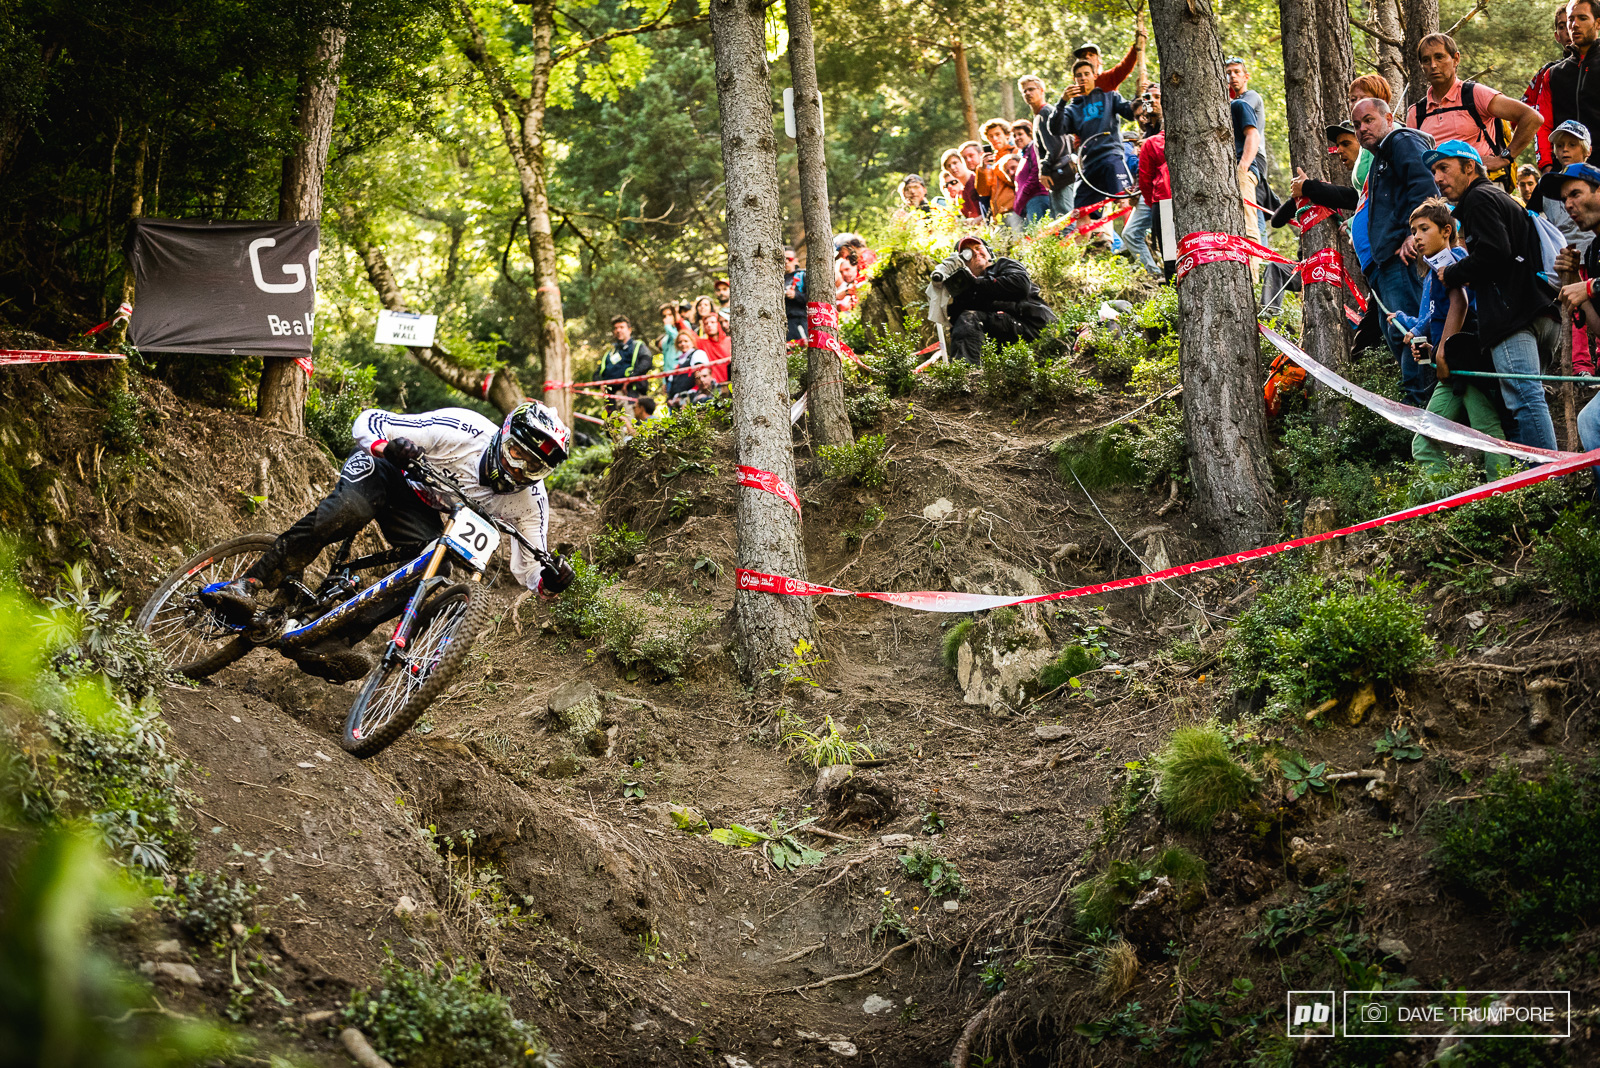 Brendan Fairclough got a bit loose coming out of the woods and would almost end up in the crowd. Luckily he saved it but lost precious seconds within sight of the finish line.